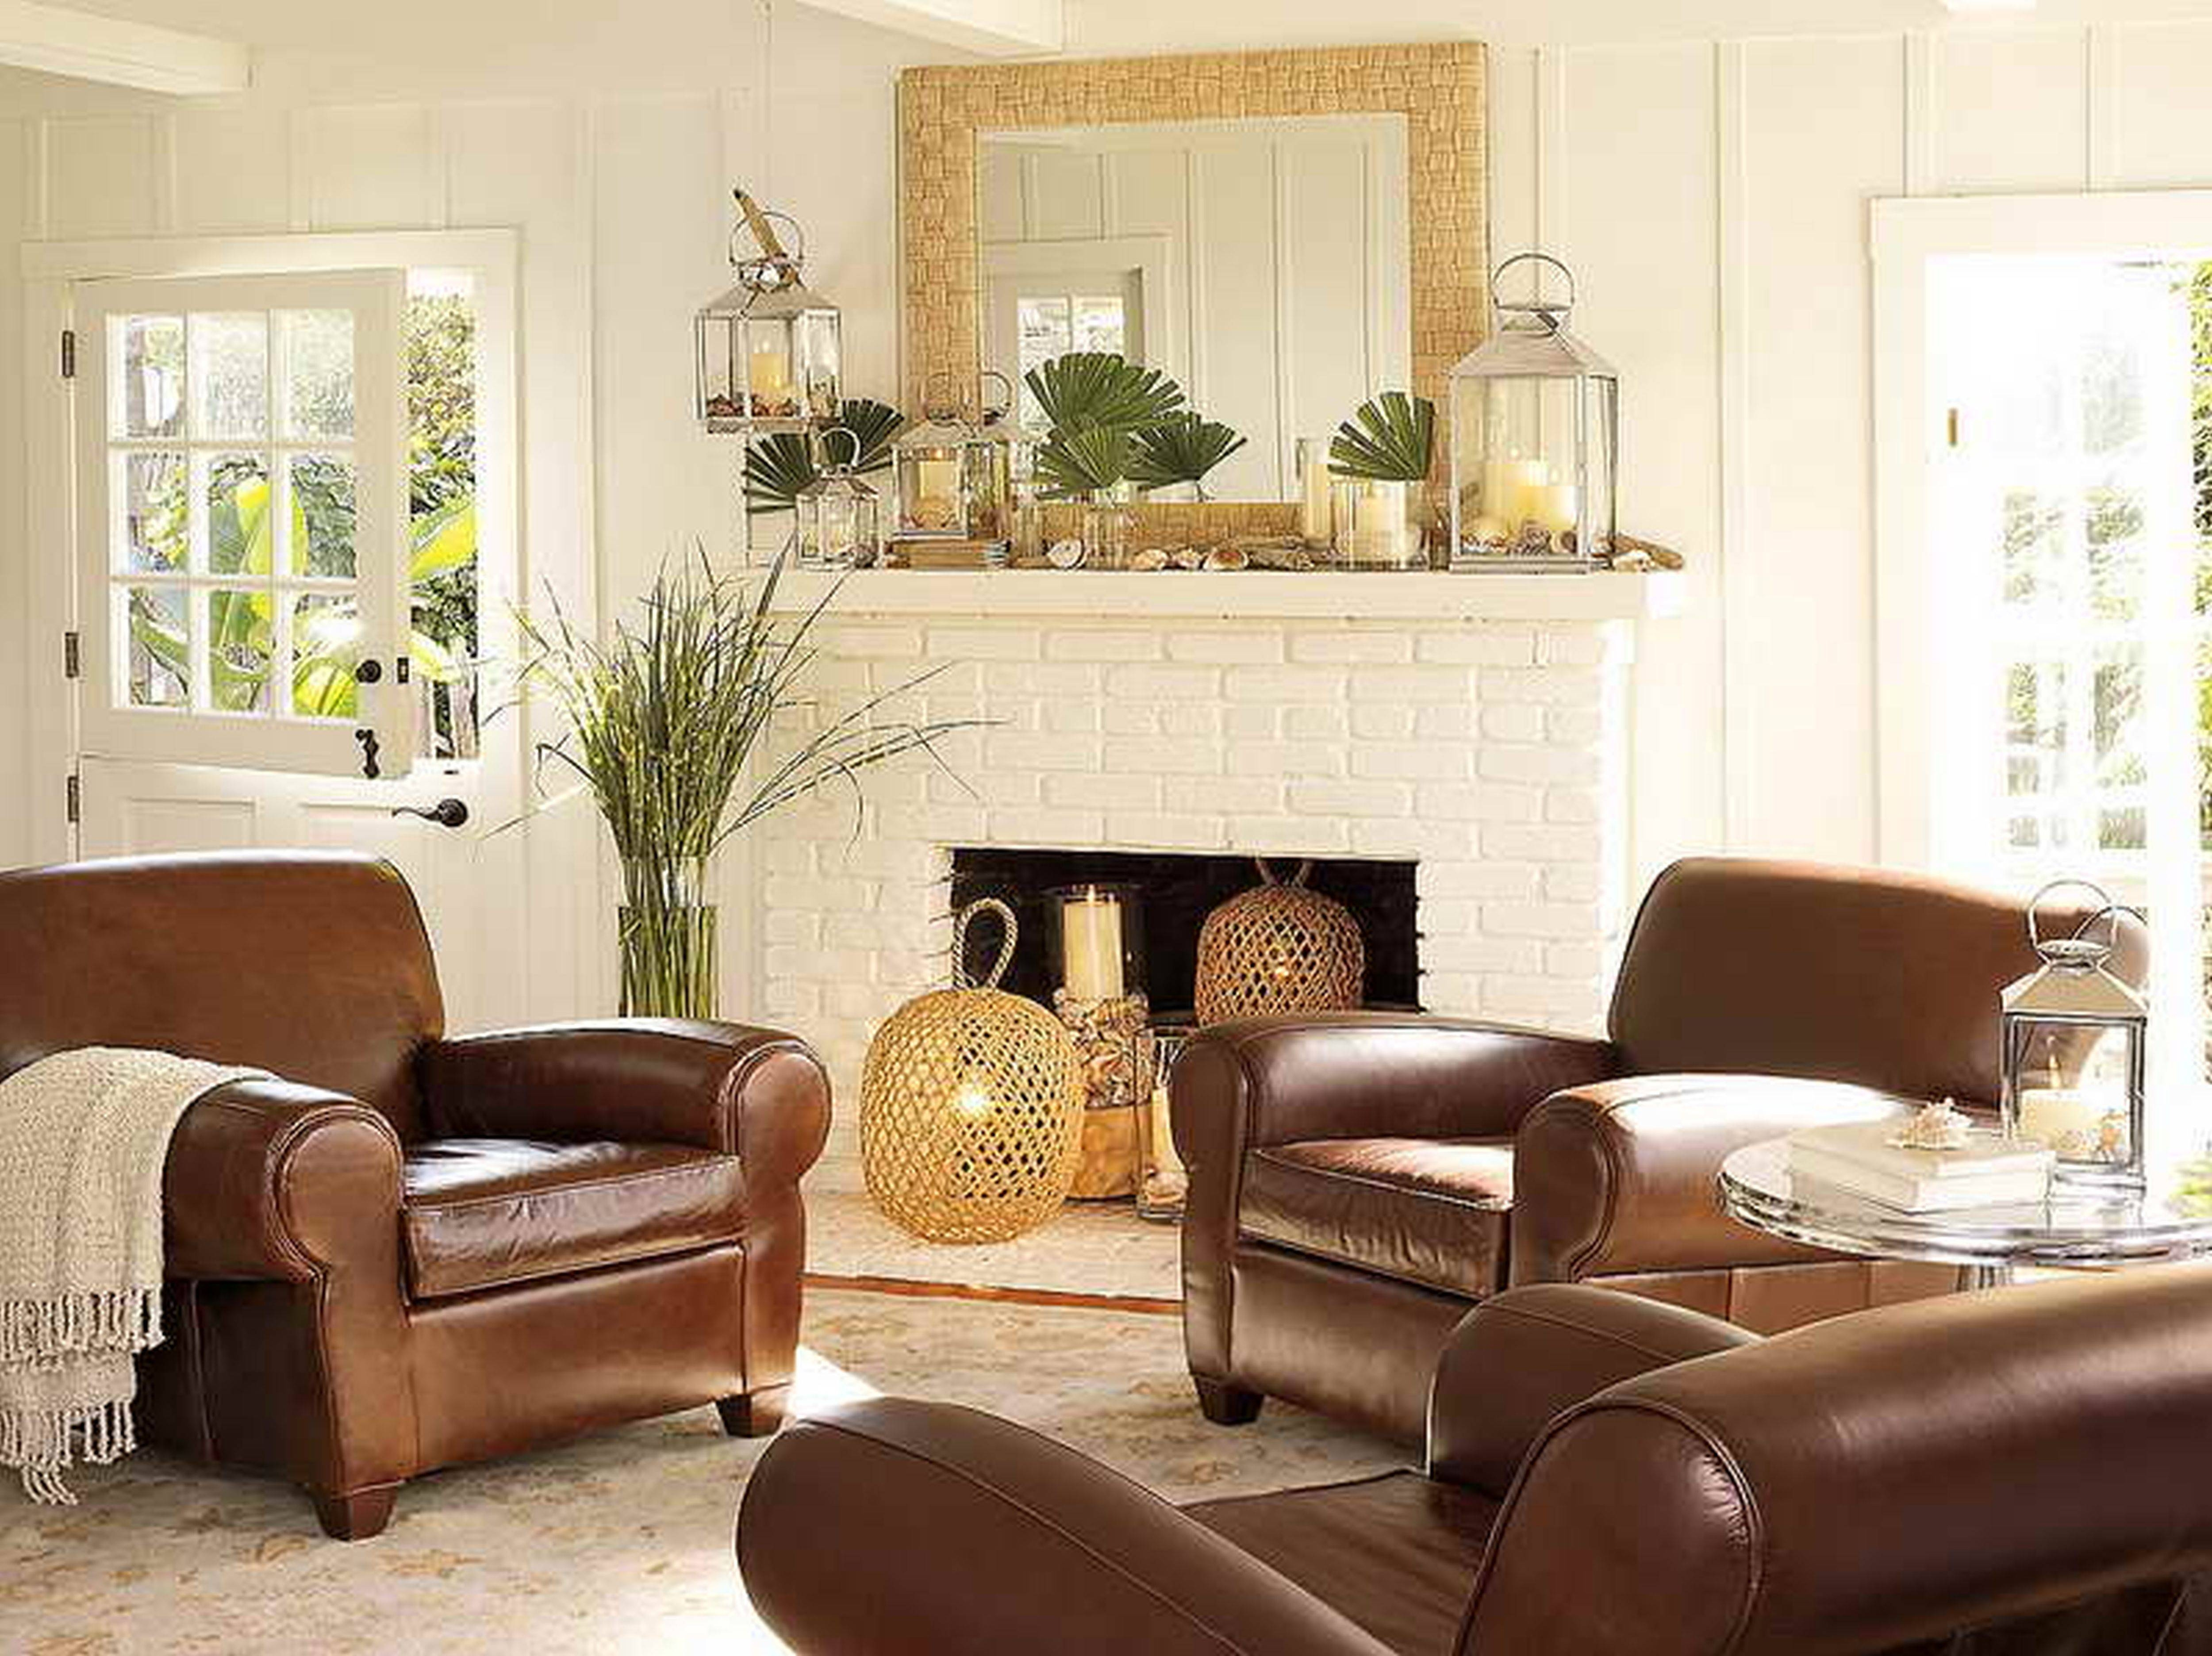 Furniture Vintage Home Decorating Ideas For Simple Living Room for Brown Sofas Decorating (Image 10 of 15)